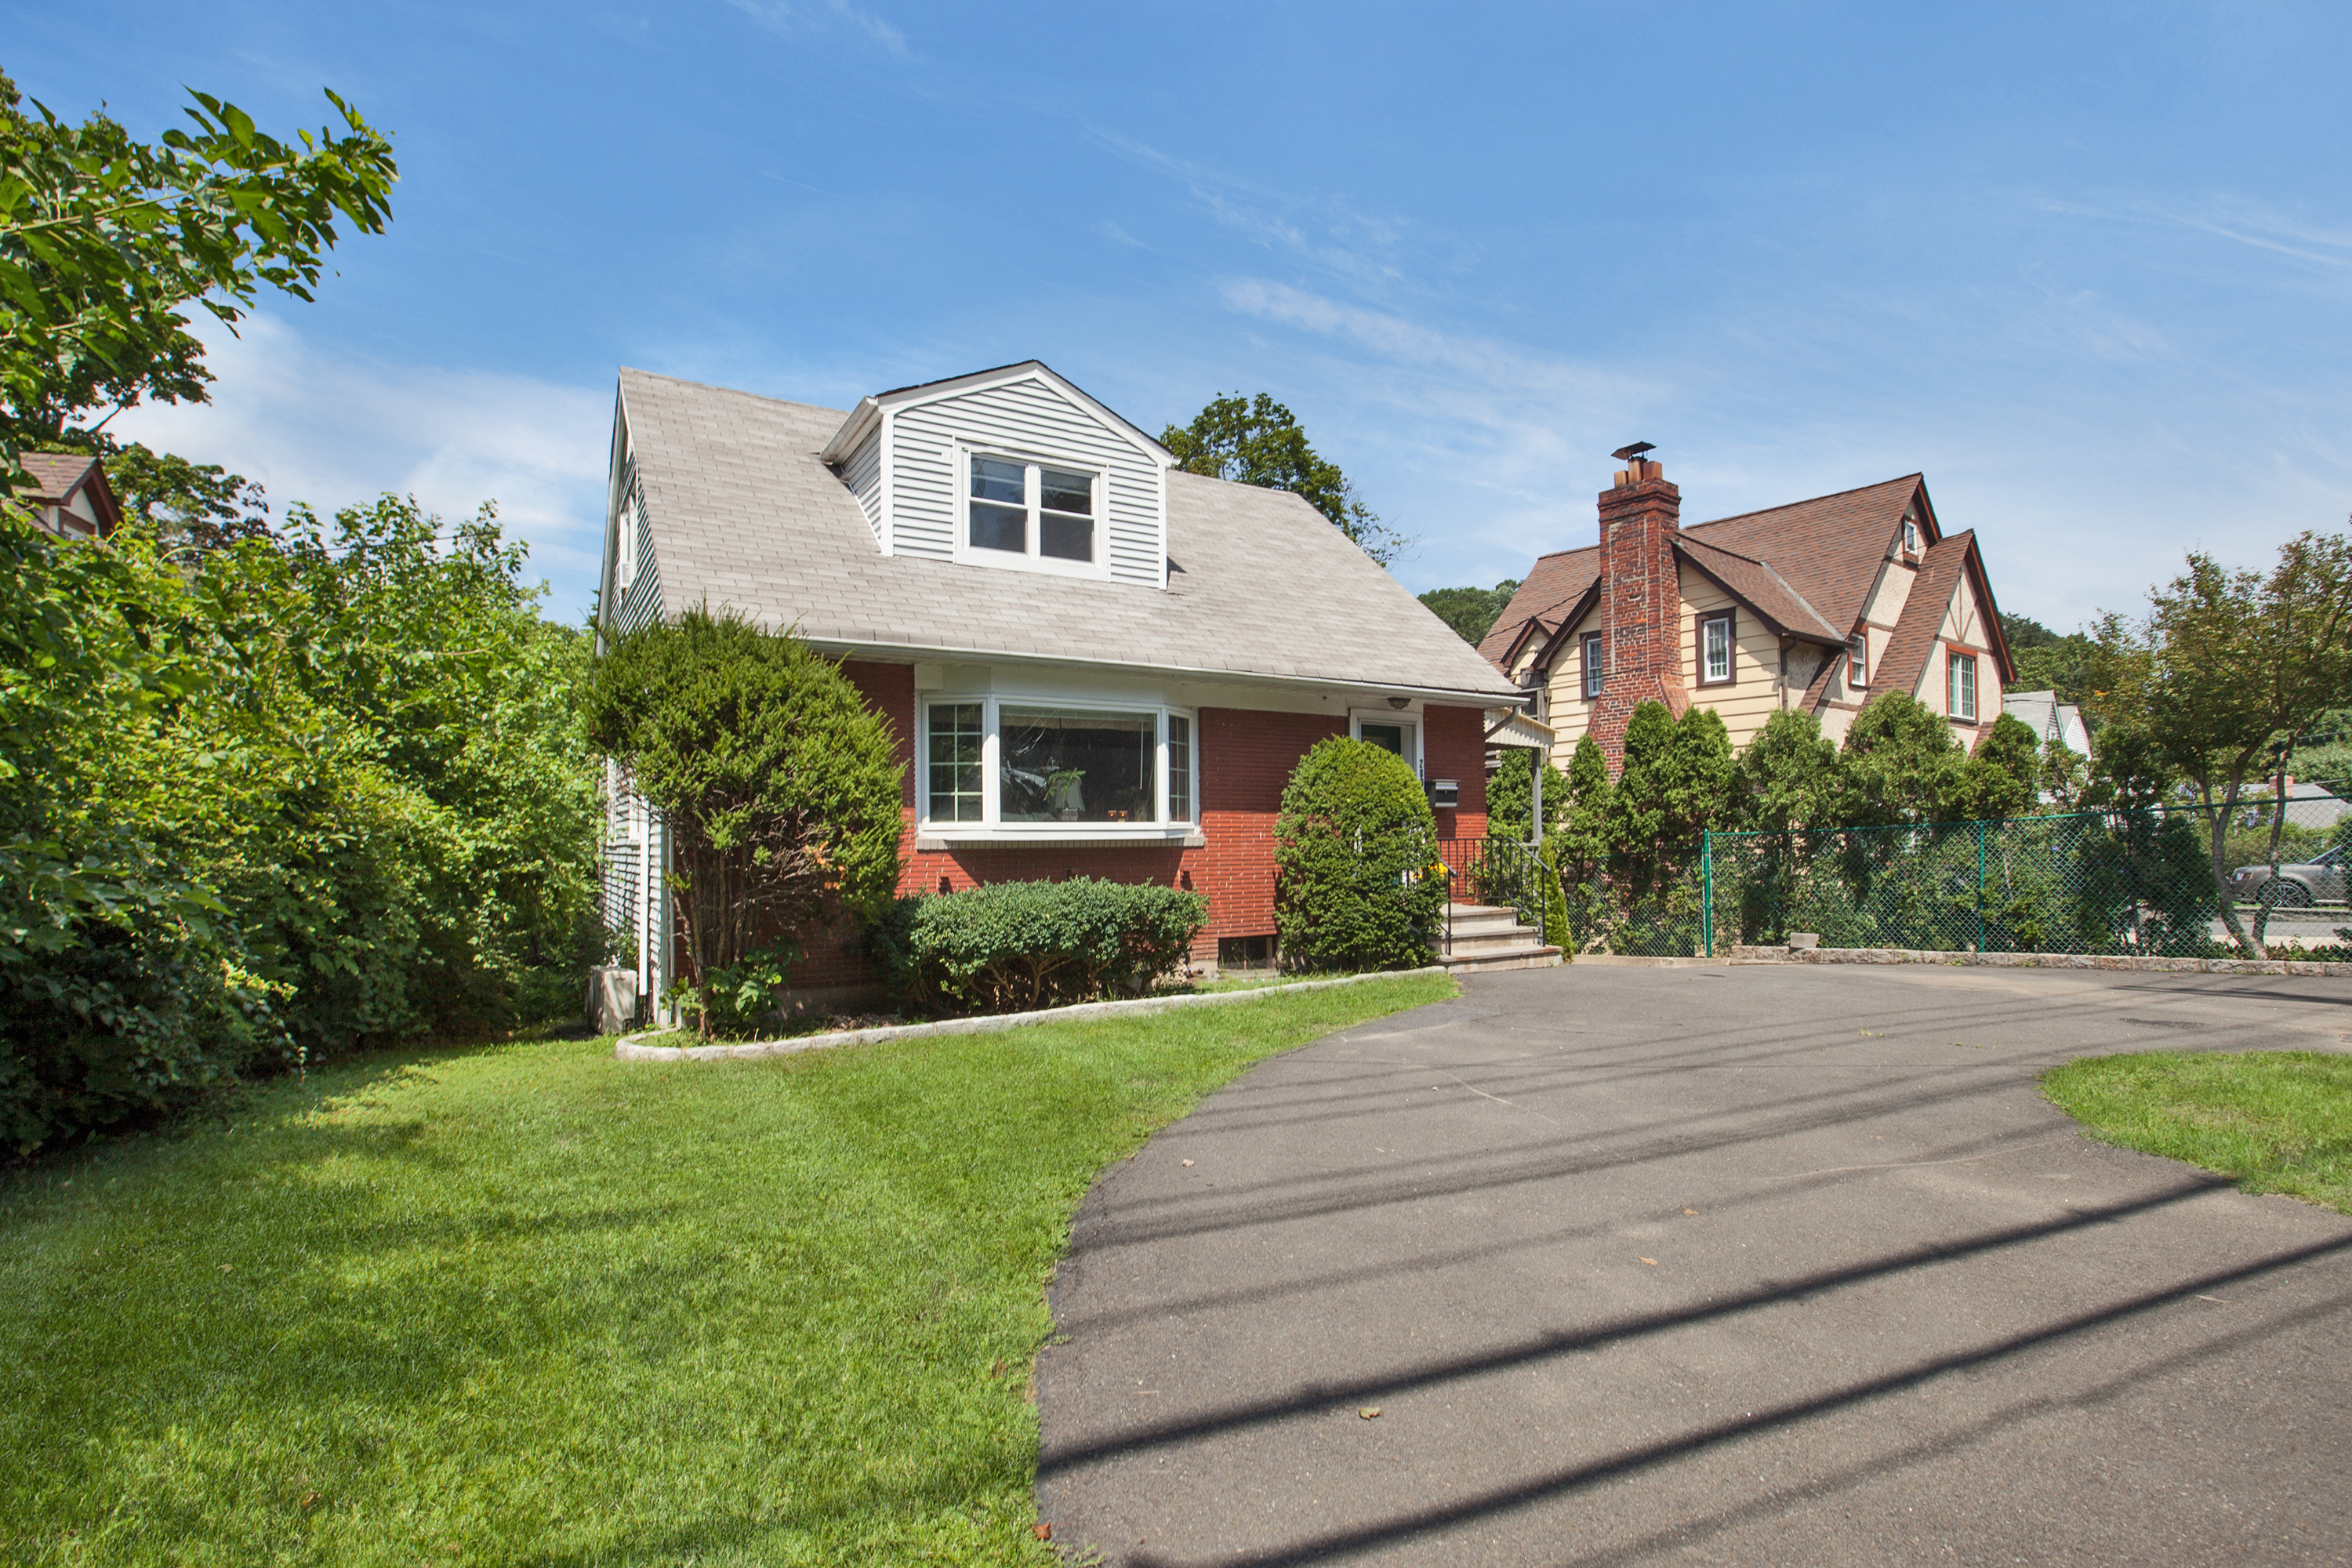 Single Family Home for Sale at Village of Dobbs Ferry 289 Ashford Avenue Dobbs Ferry, New York, 10522 United States